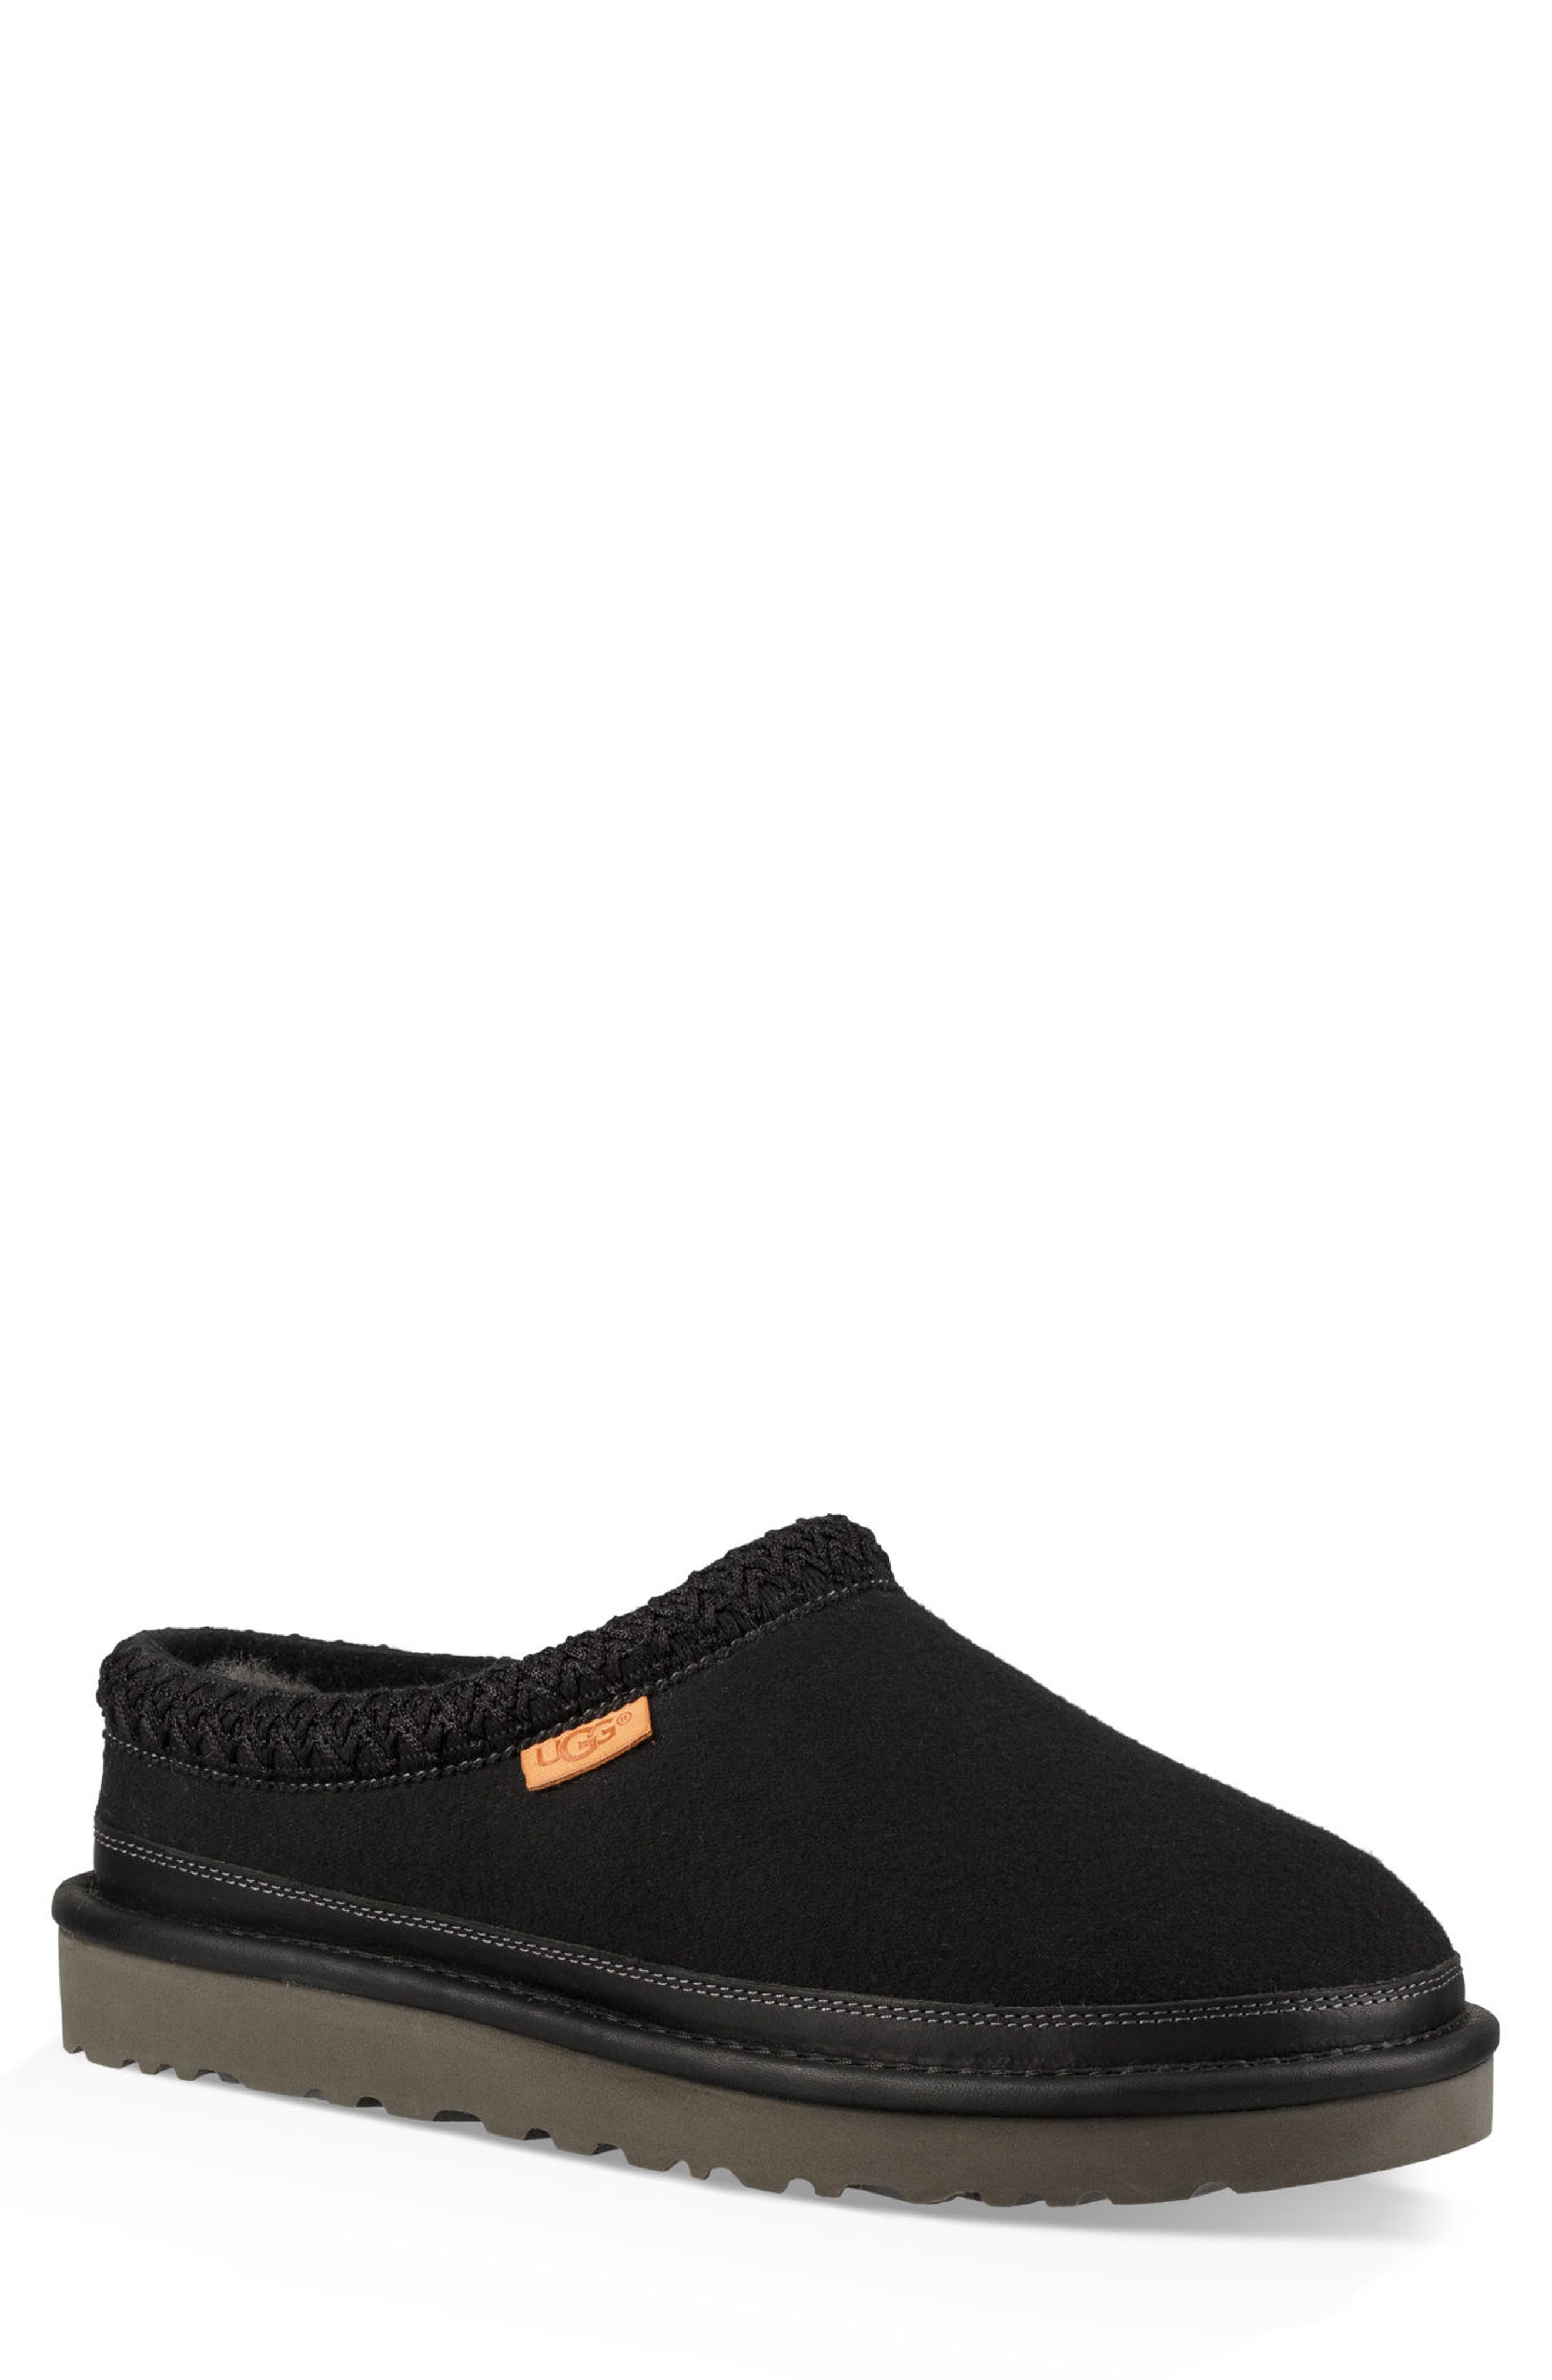 'Tasman' Slipper,                         Main,                         color, BLACK/ BLACK